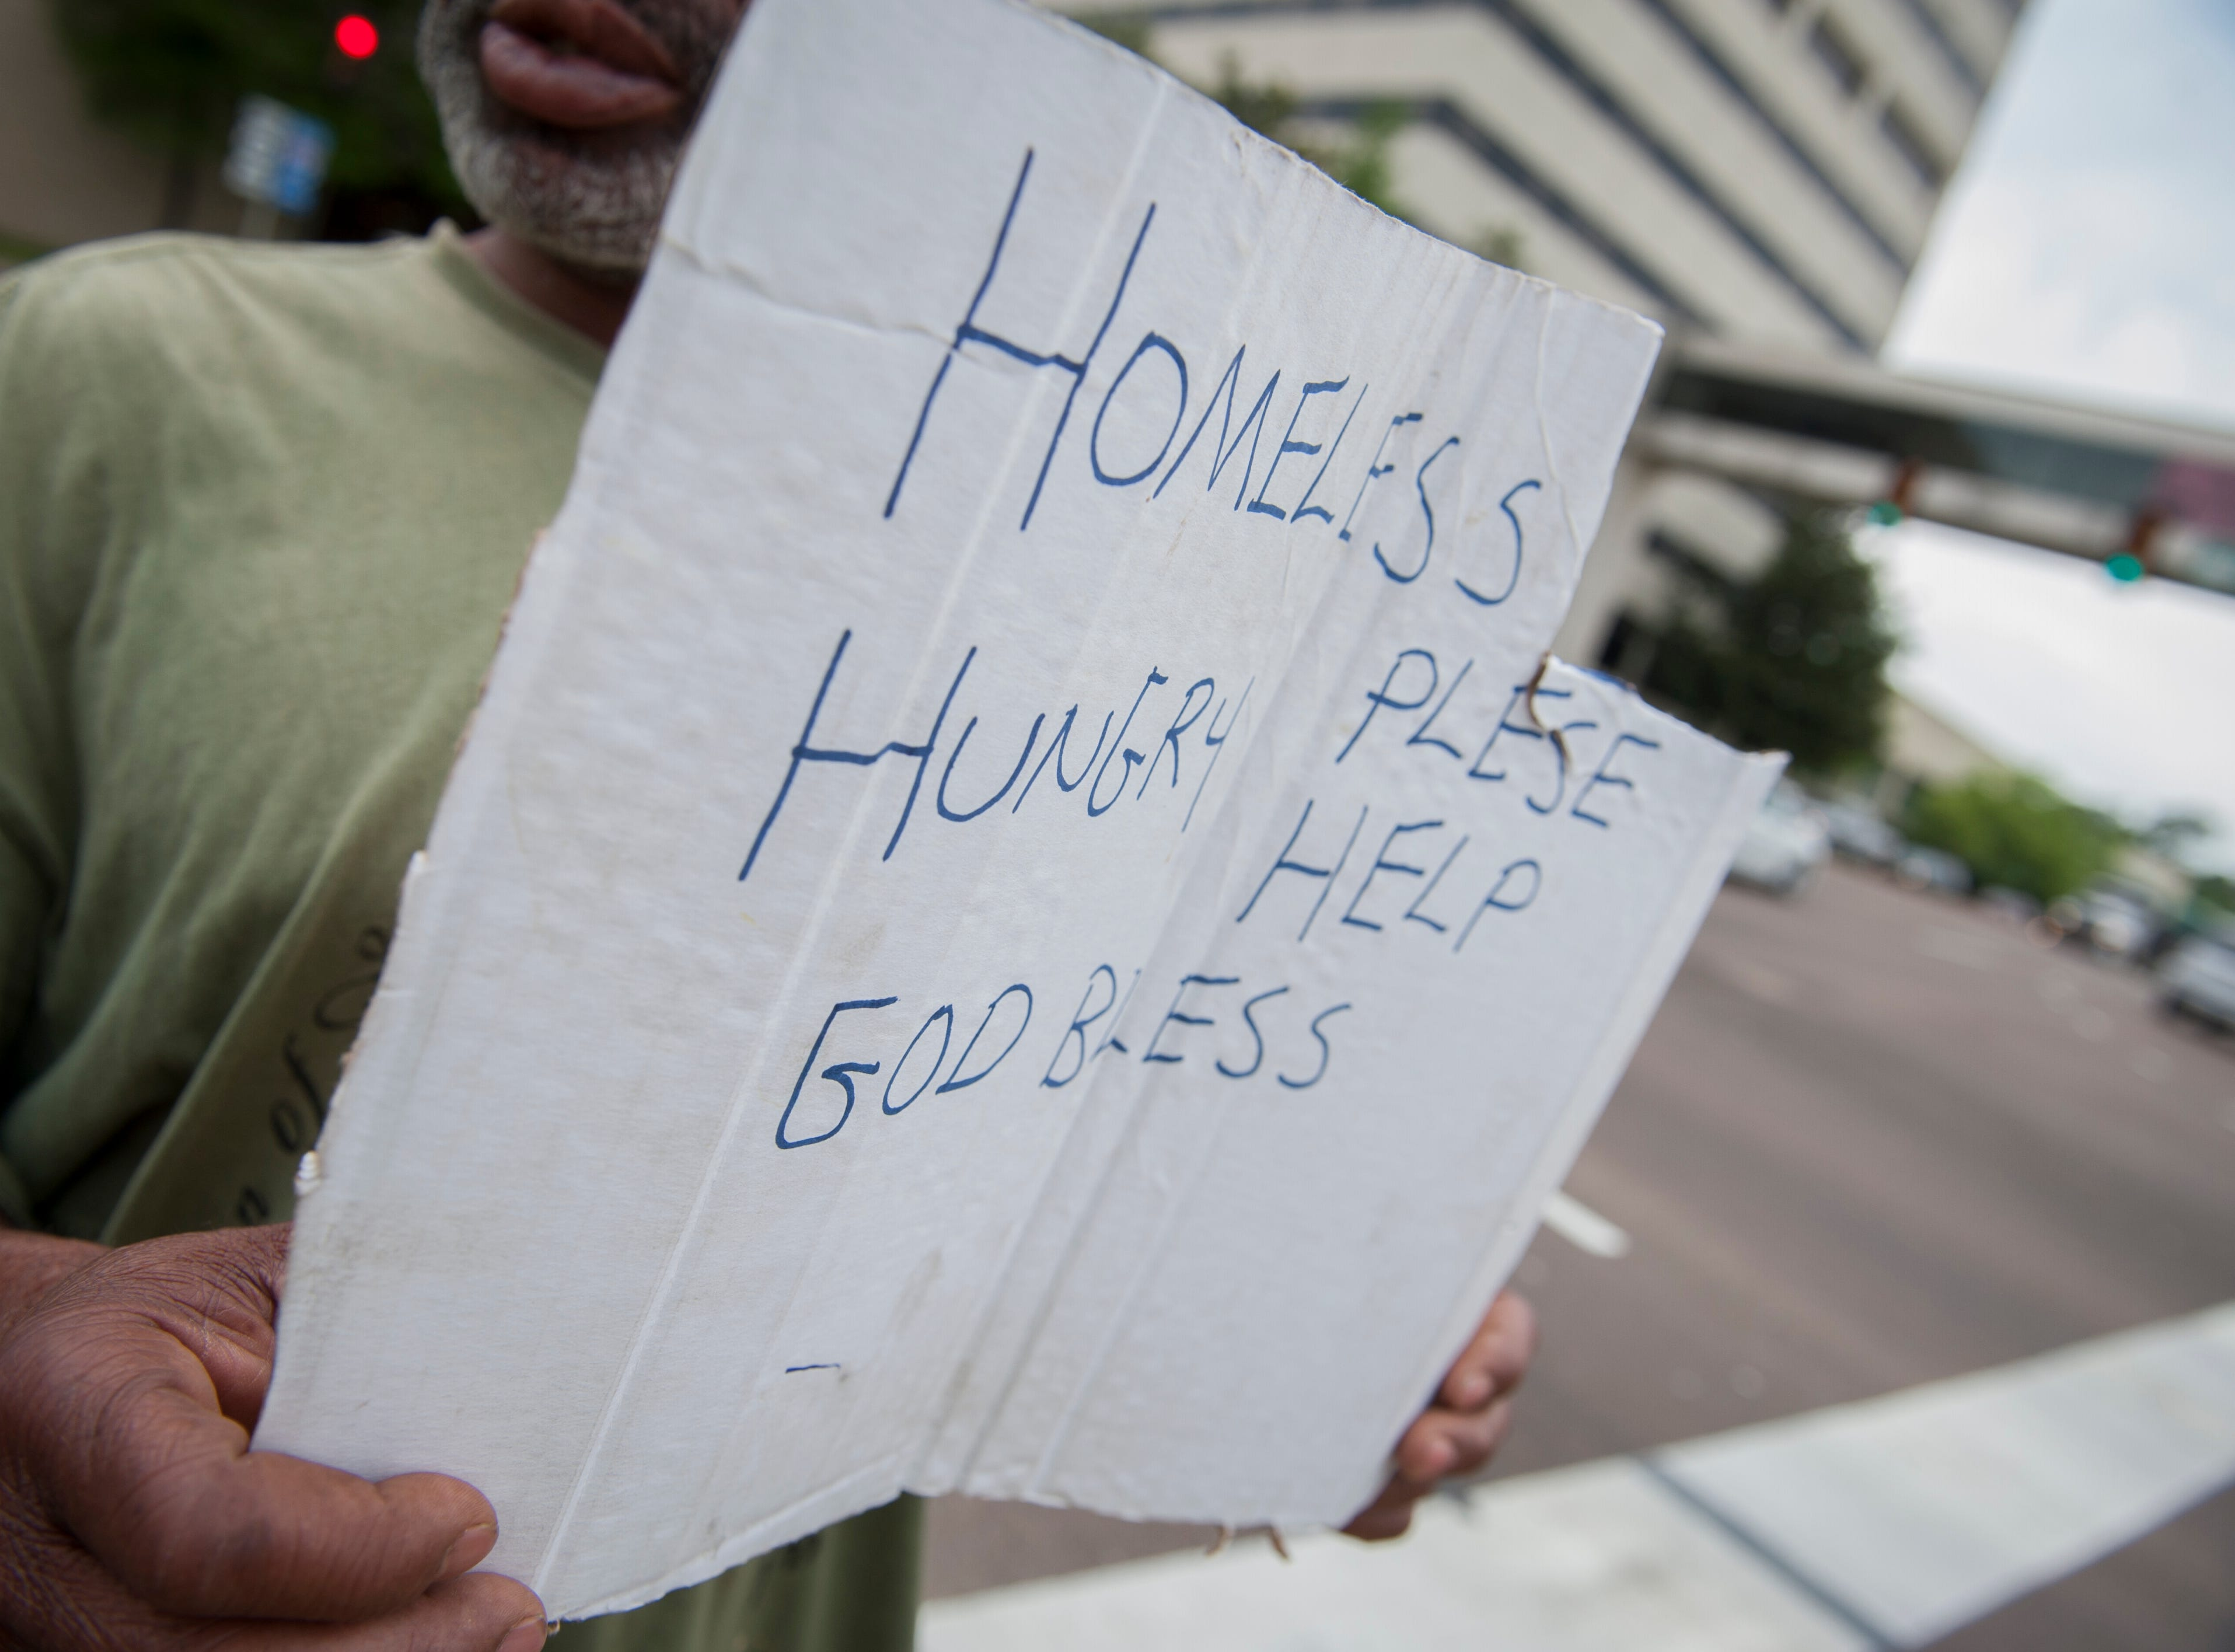 Cornelius, standing at the corner of I-55 West Frontage Road and Lakeland Drive, usually works from 30 minutes to an hour to get enough money for food. He sleeps under a bridge.